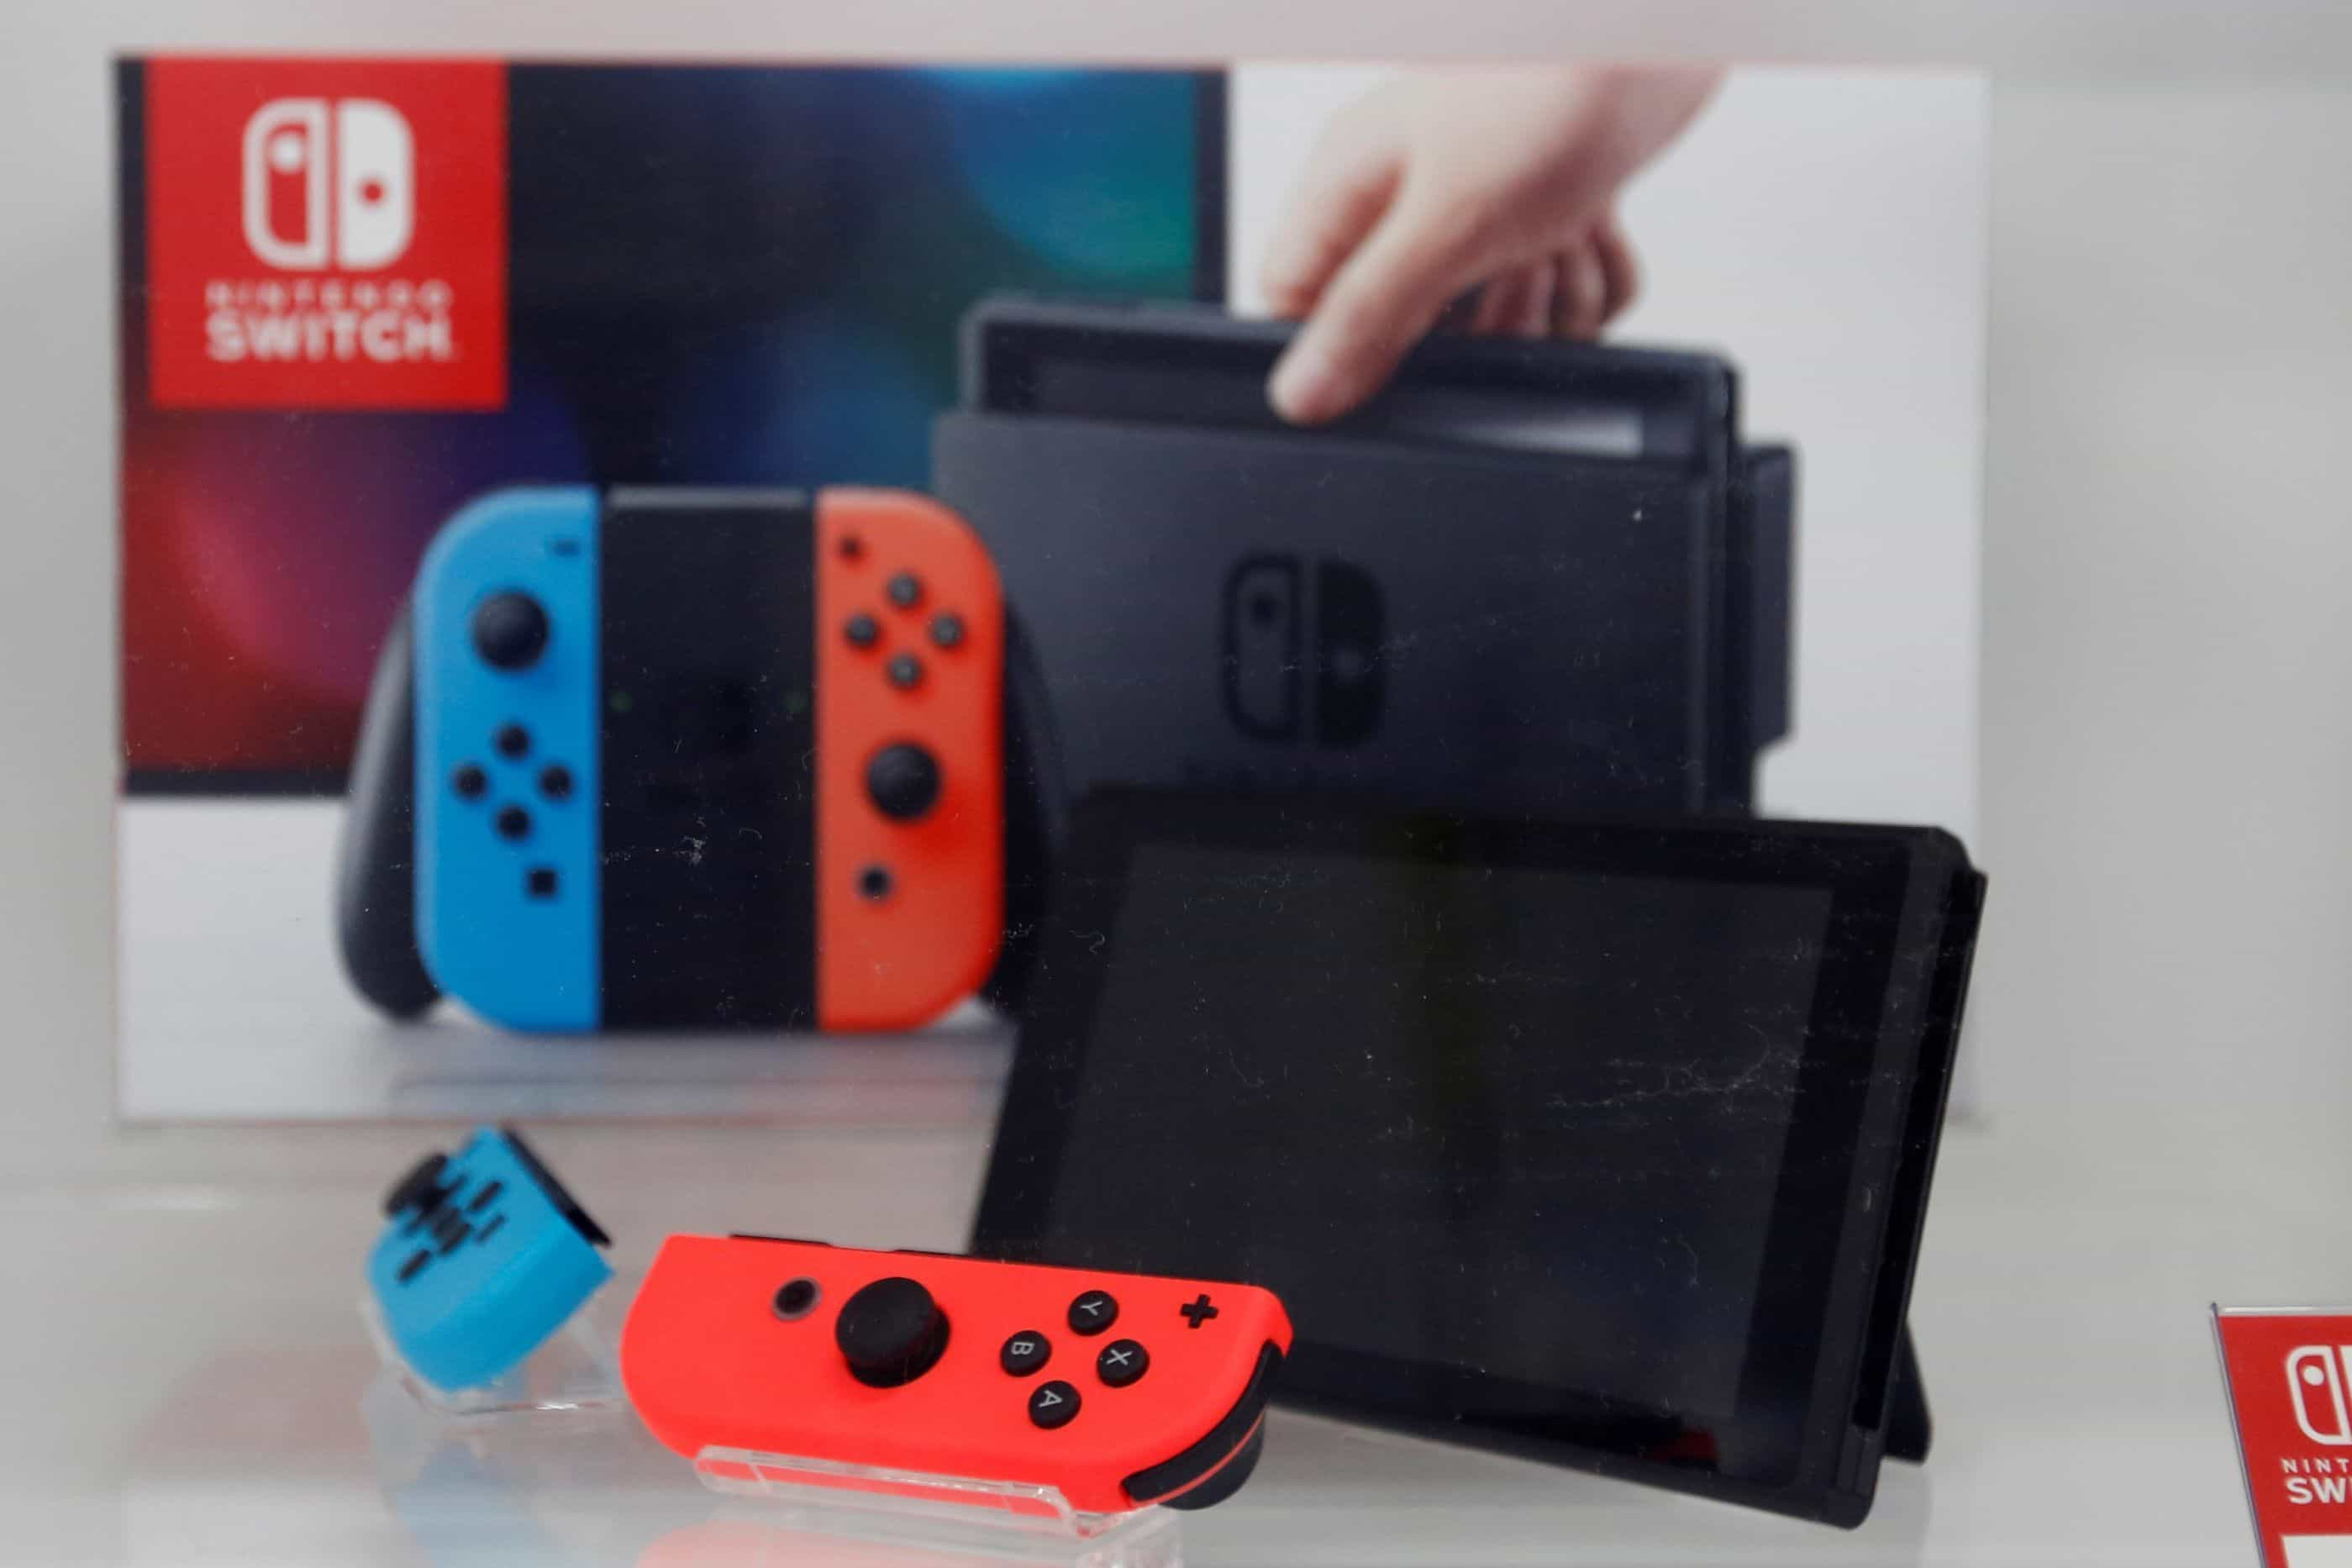 Rumor. Versão mais barata da Switch chega no final do ano